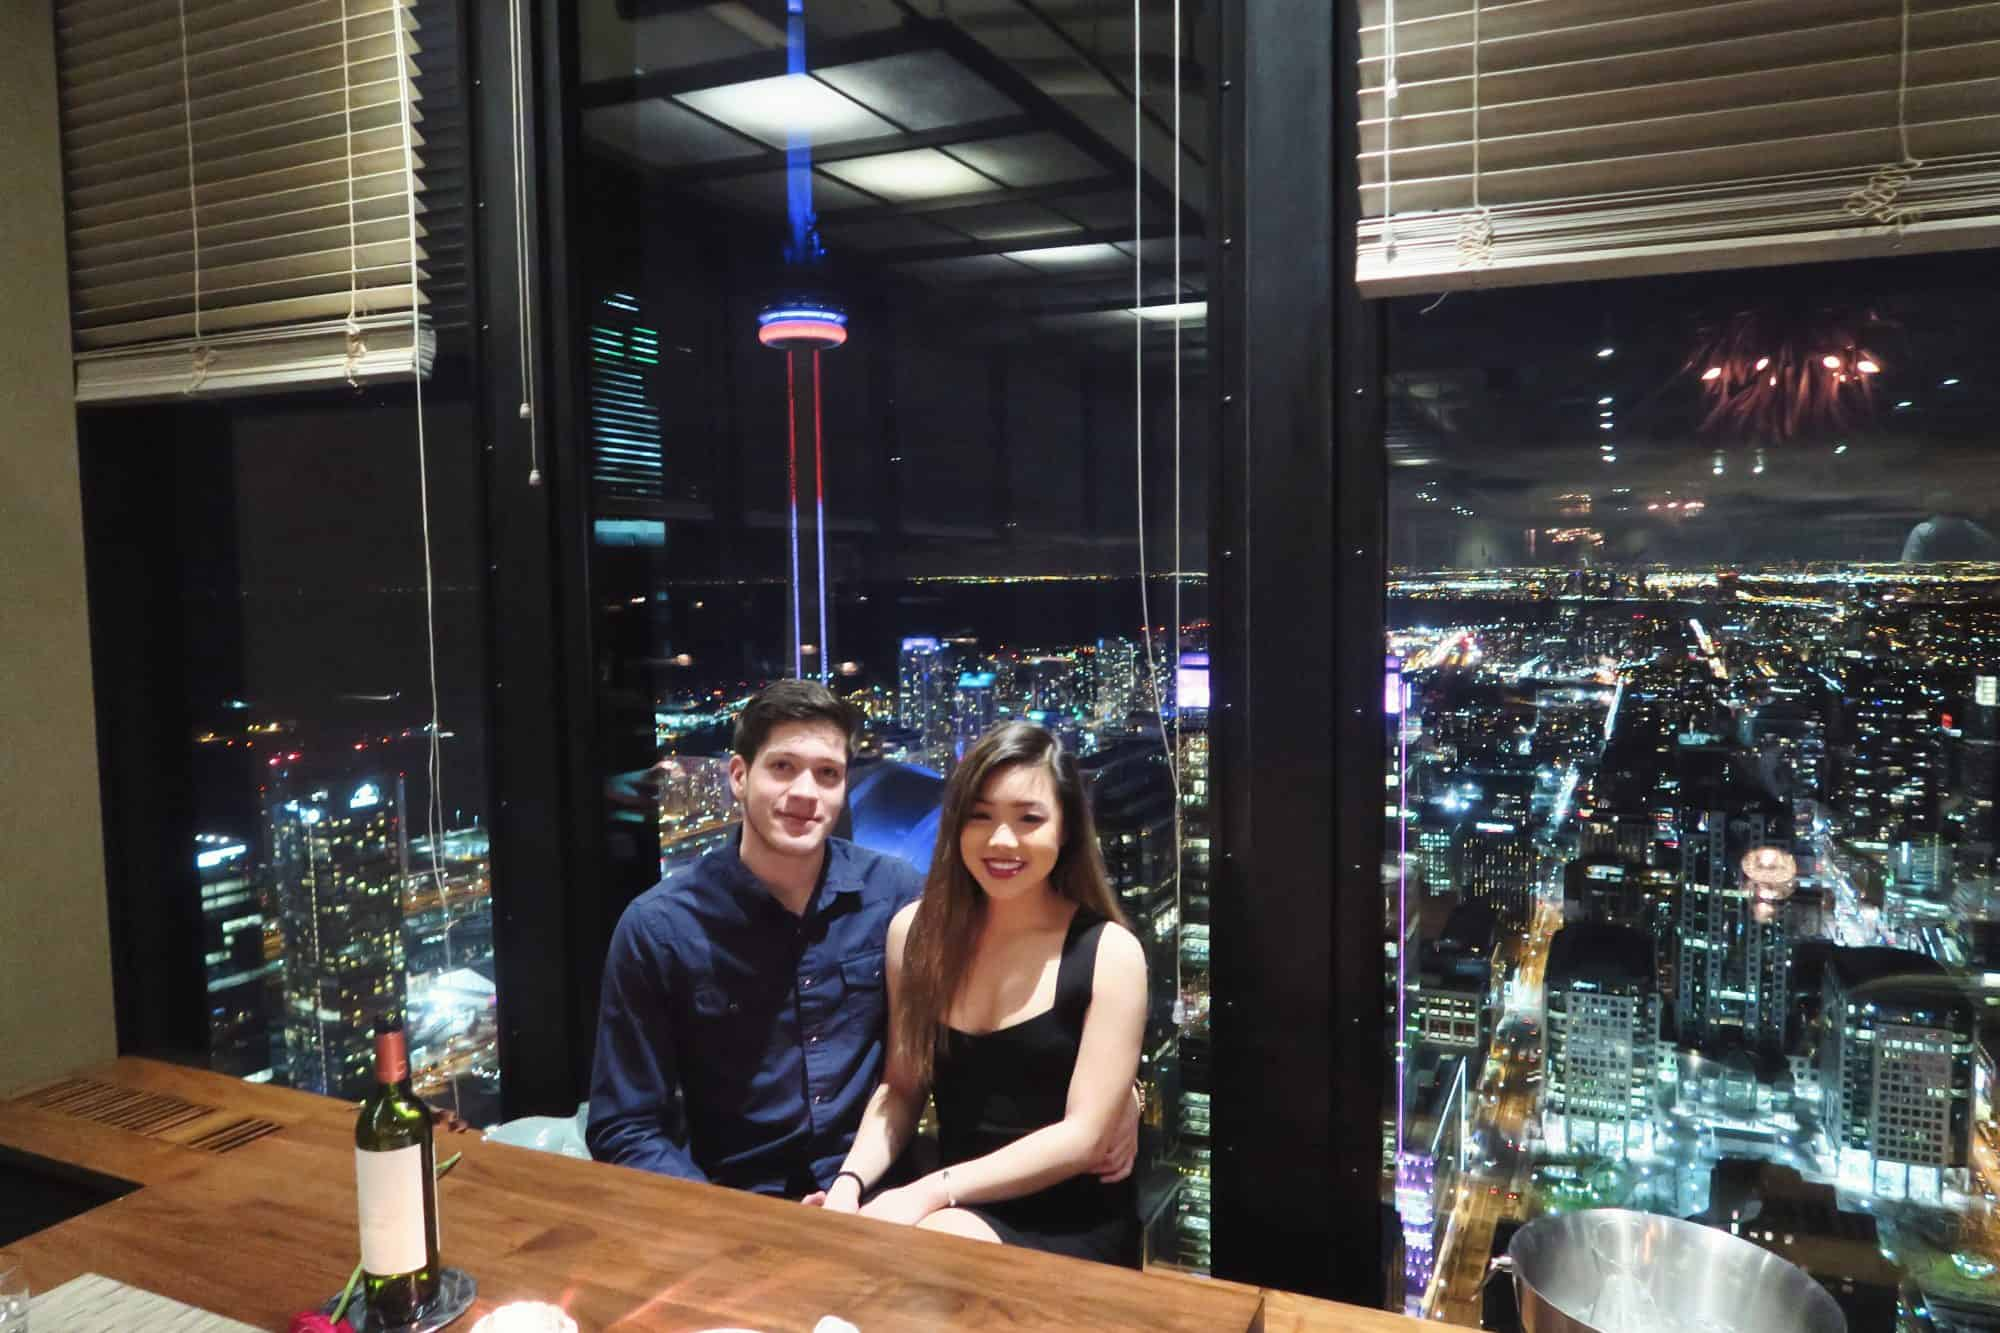 A review of Canoe Restaurant in Toronto and their set Valentine's Day menu